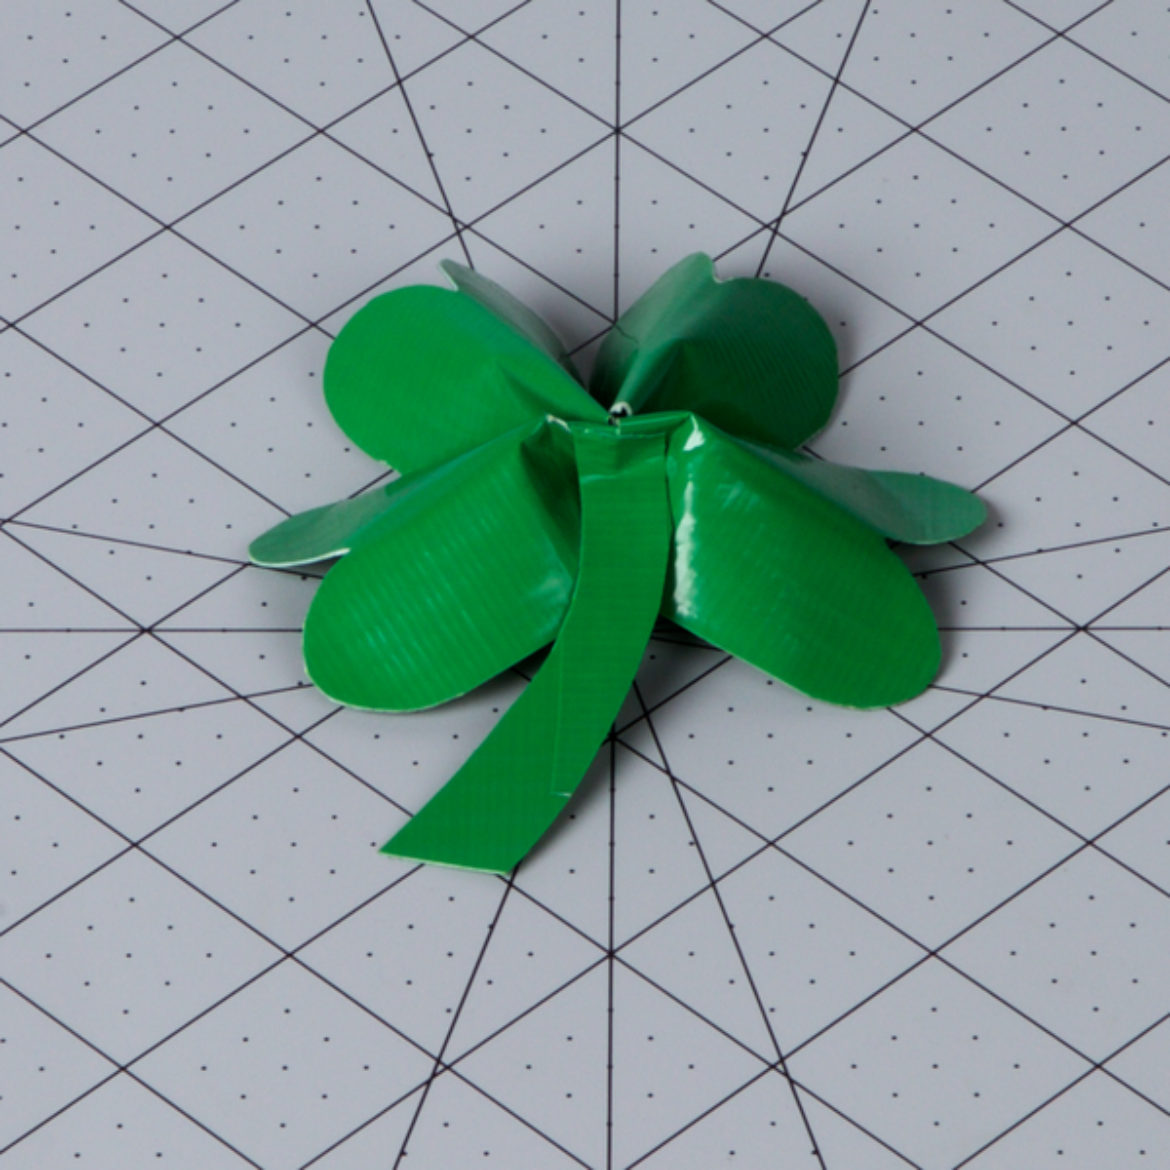 Stem added to the center of the back of the clover to serve as the stem